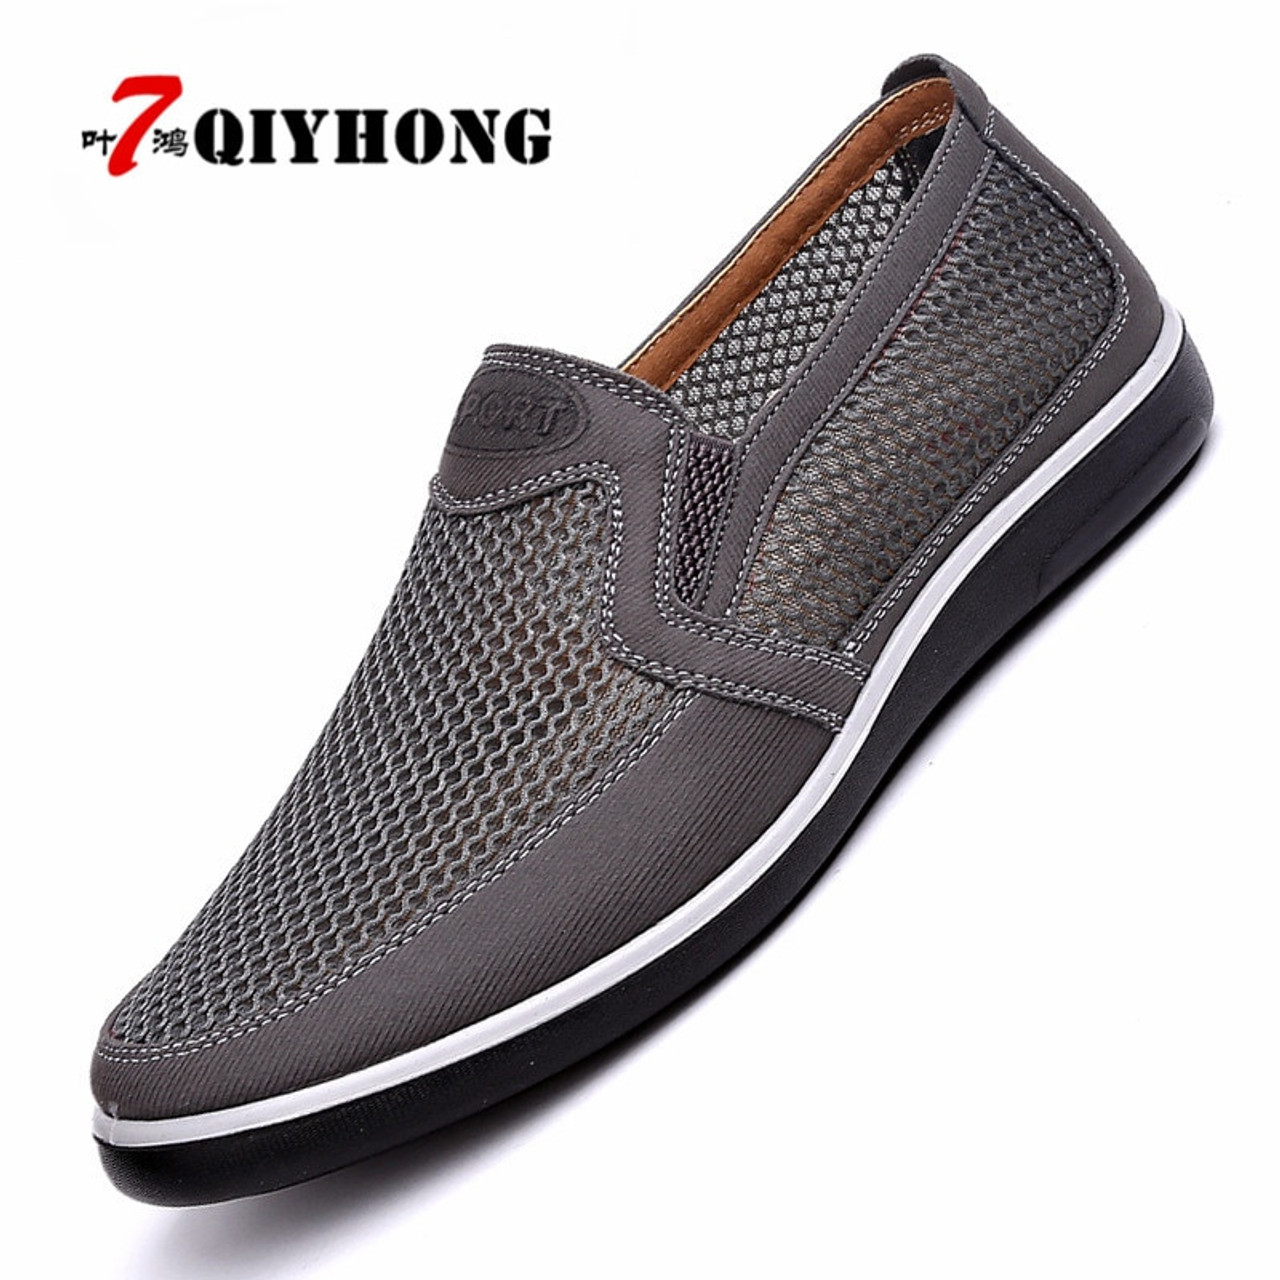 3bcc12edb7935 ... New Listing Summer Breathable Mesh Men Shoes Lightweight Men Flats  Fashion Casual Male Shoes Brand Designer ...